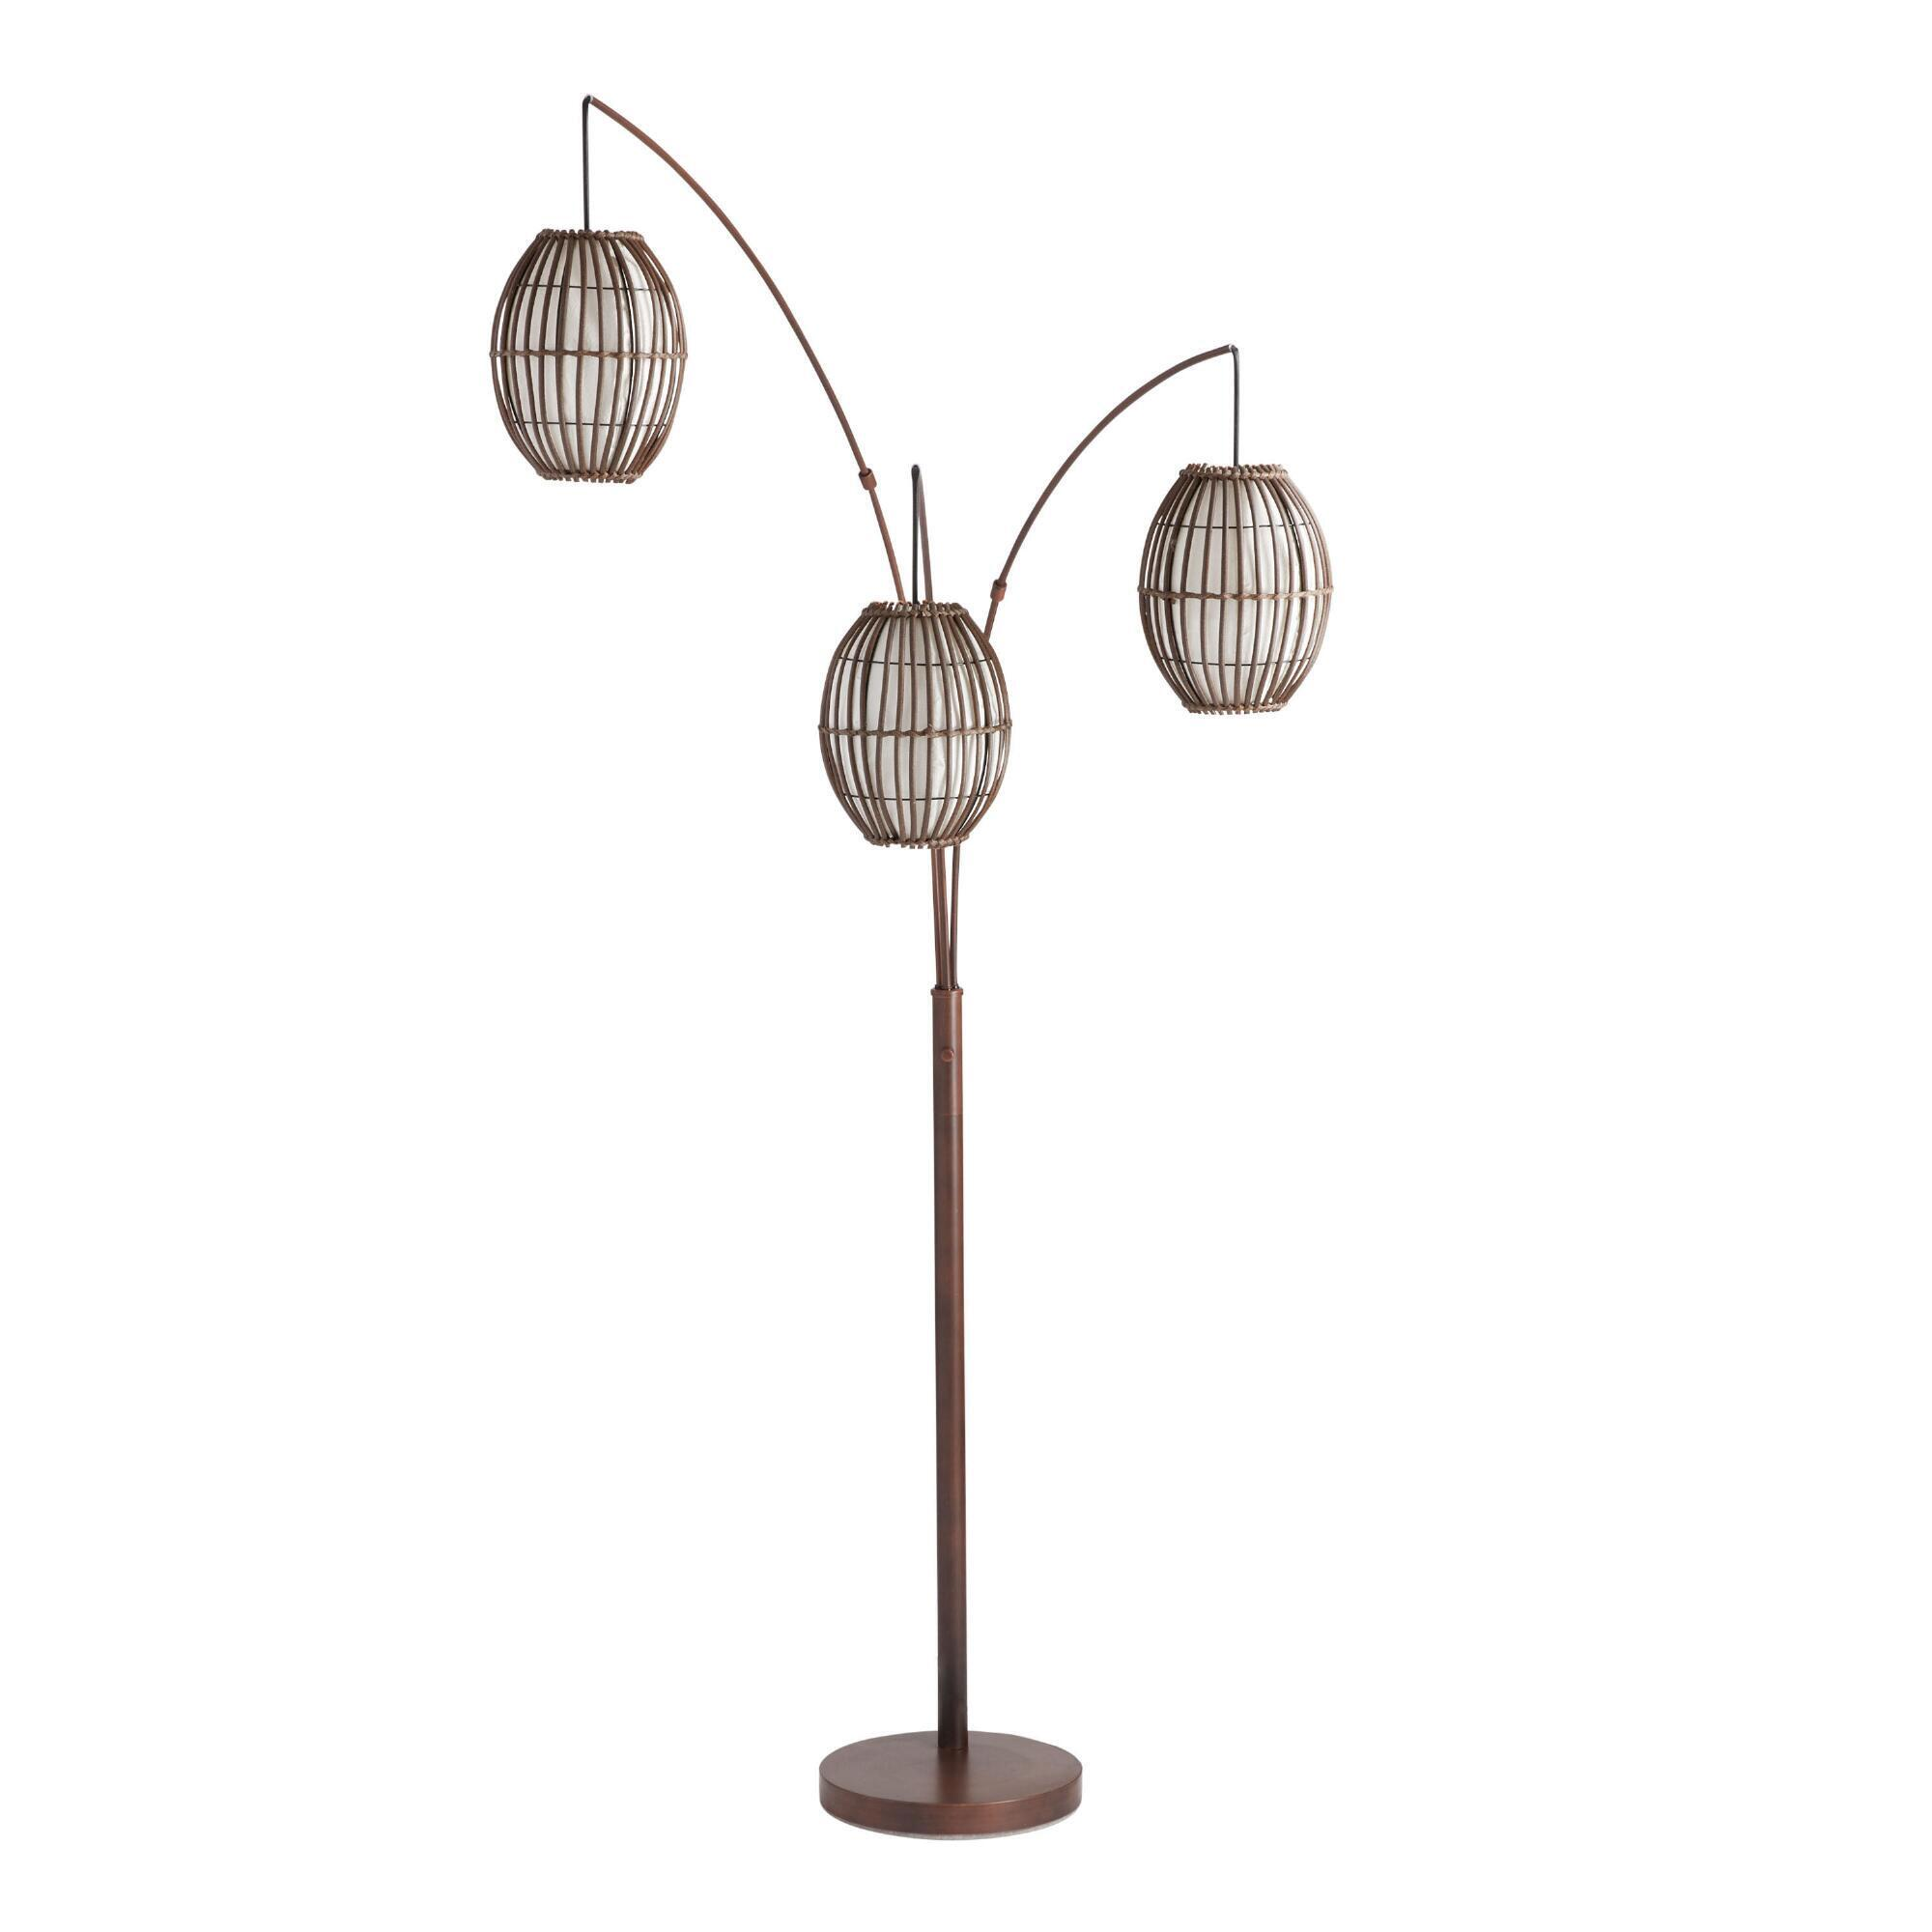 free light garden floor lighting shipping product safavieh inch reflections home ball today floors stacked lamp overstock